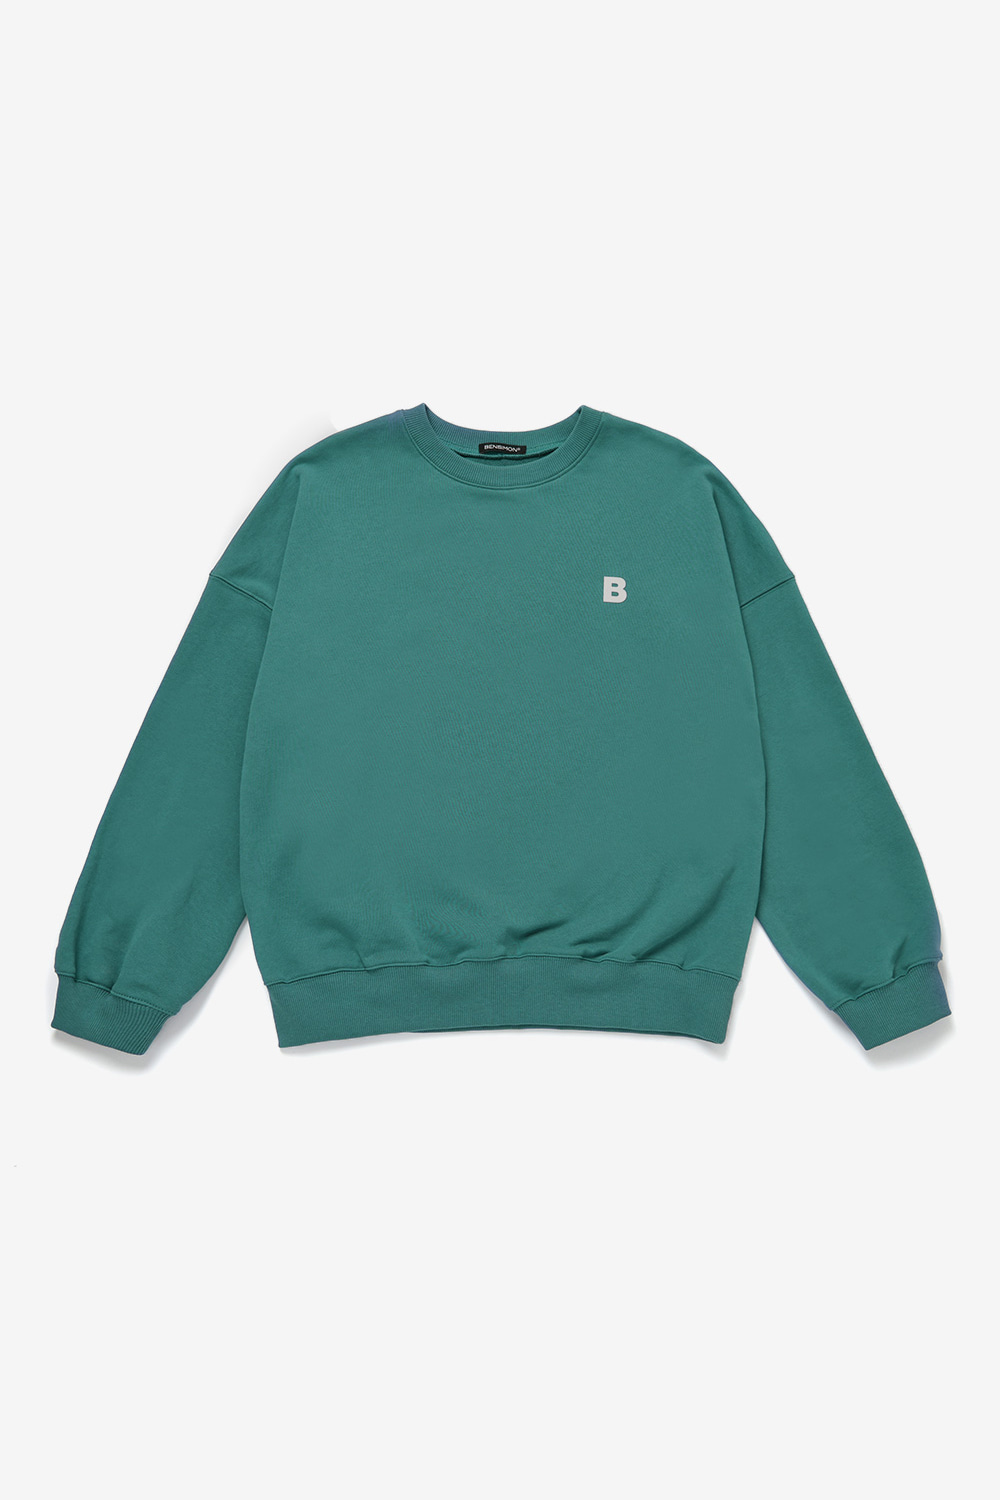 B Logo Over MTM(unisex)_GreenBS0SMT207GN00F